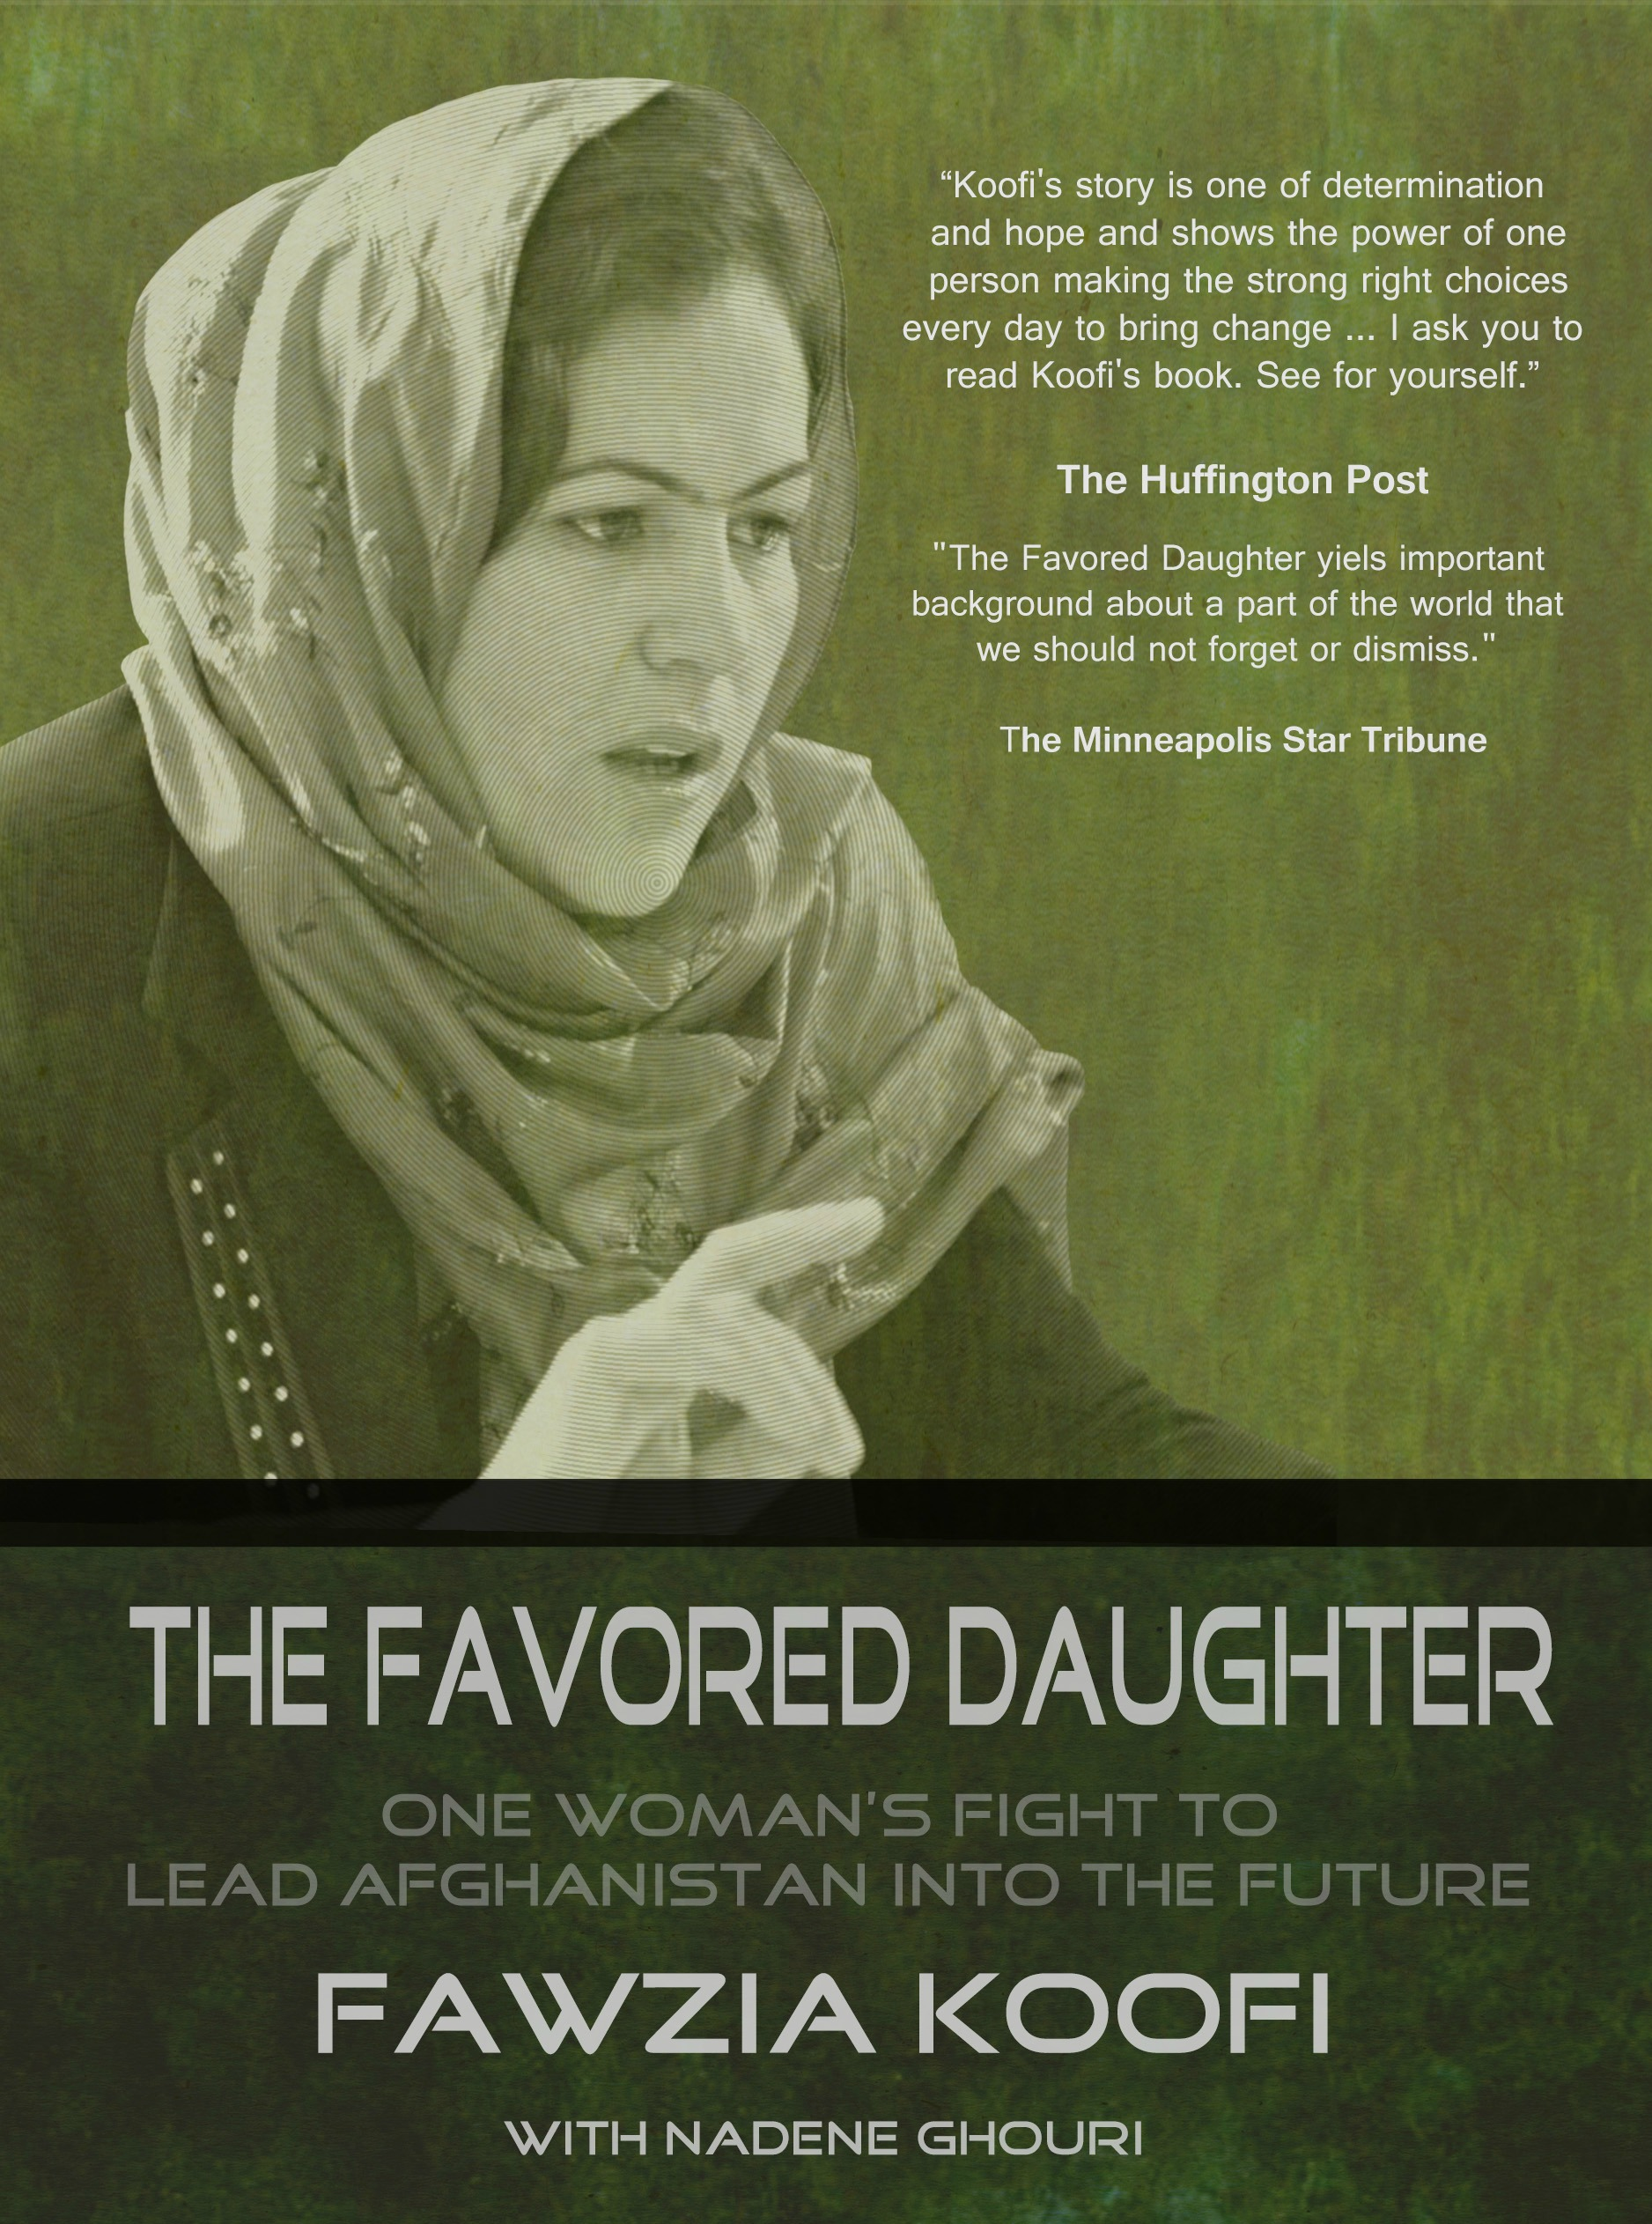 favored daughter Fawzia koofi (persian: فوزیه کوفی  ) (born in 1975) is an afghan politician and  women's rights  fawzia koofi's memoir, the favored daughter: one woman's  fight to lead afghanistan into the future, is an autobiographical memoir written  by.